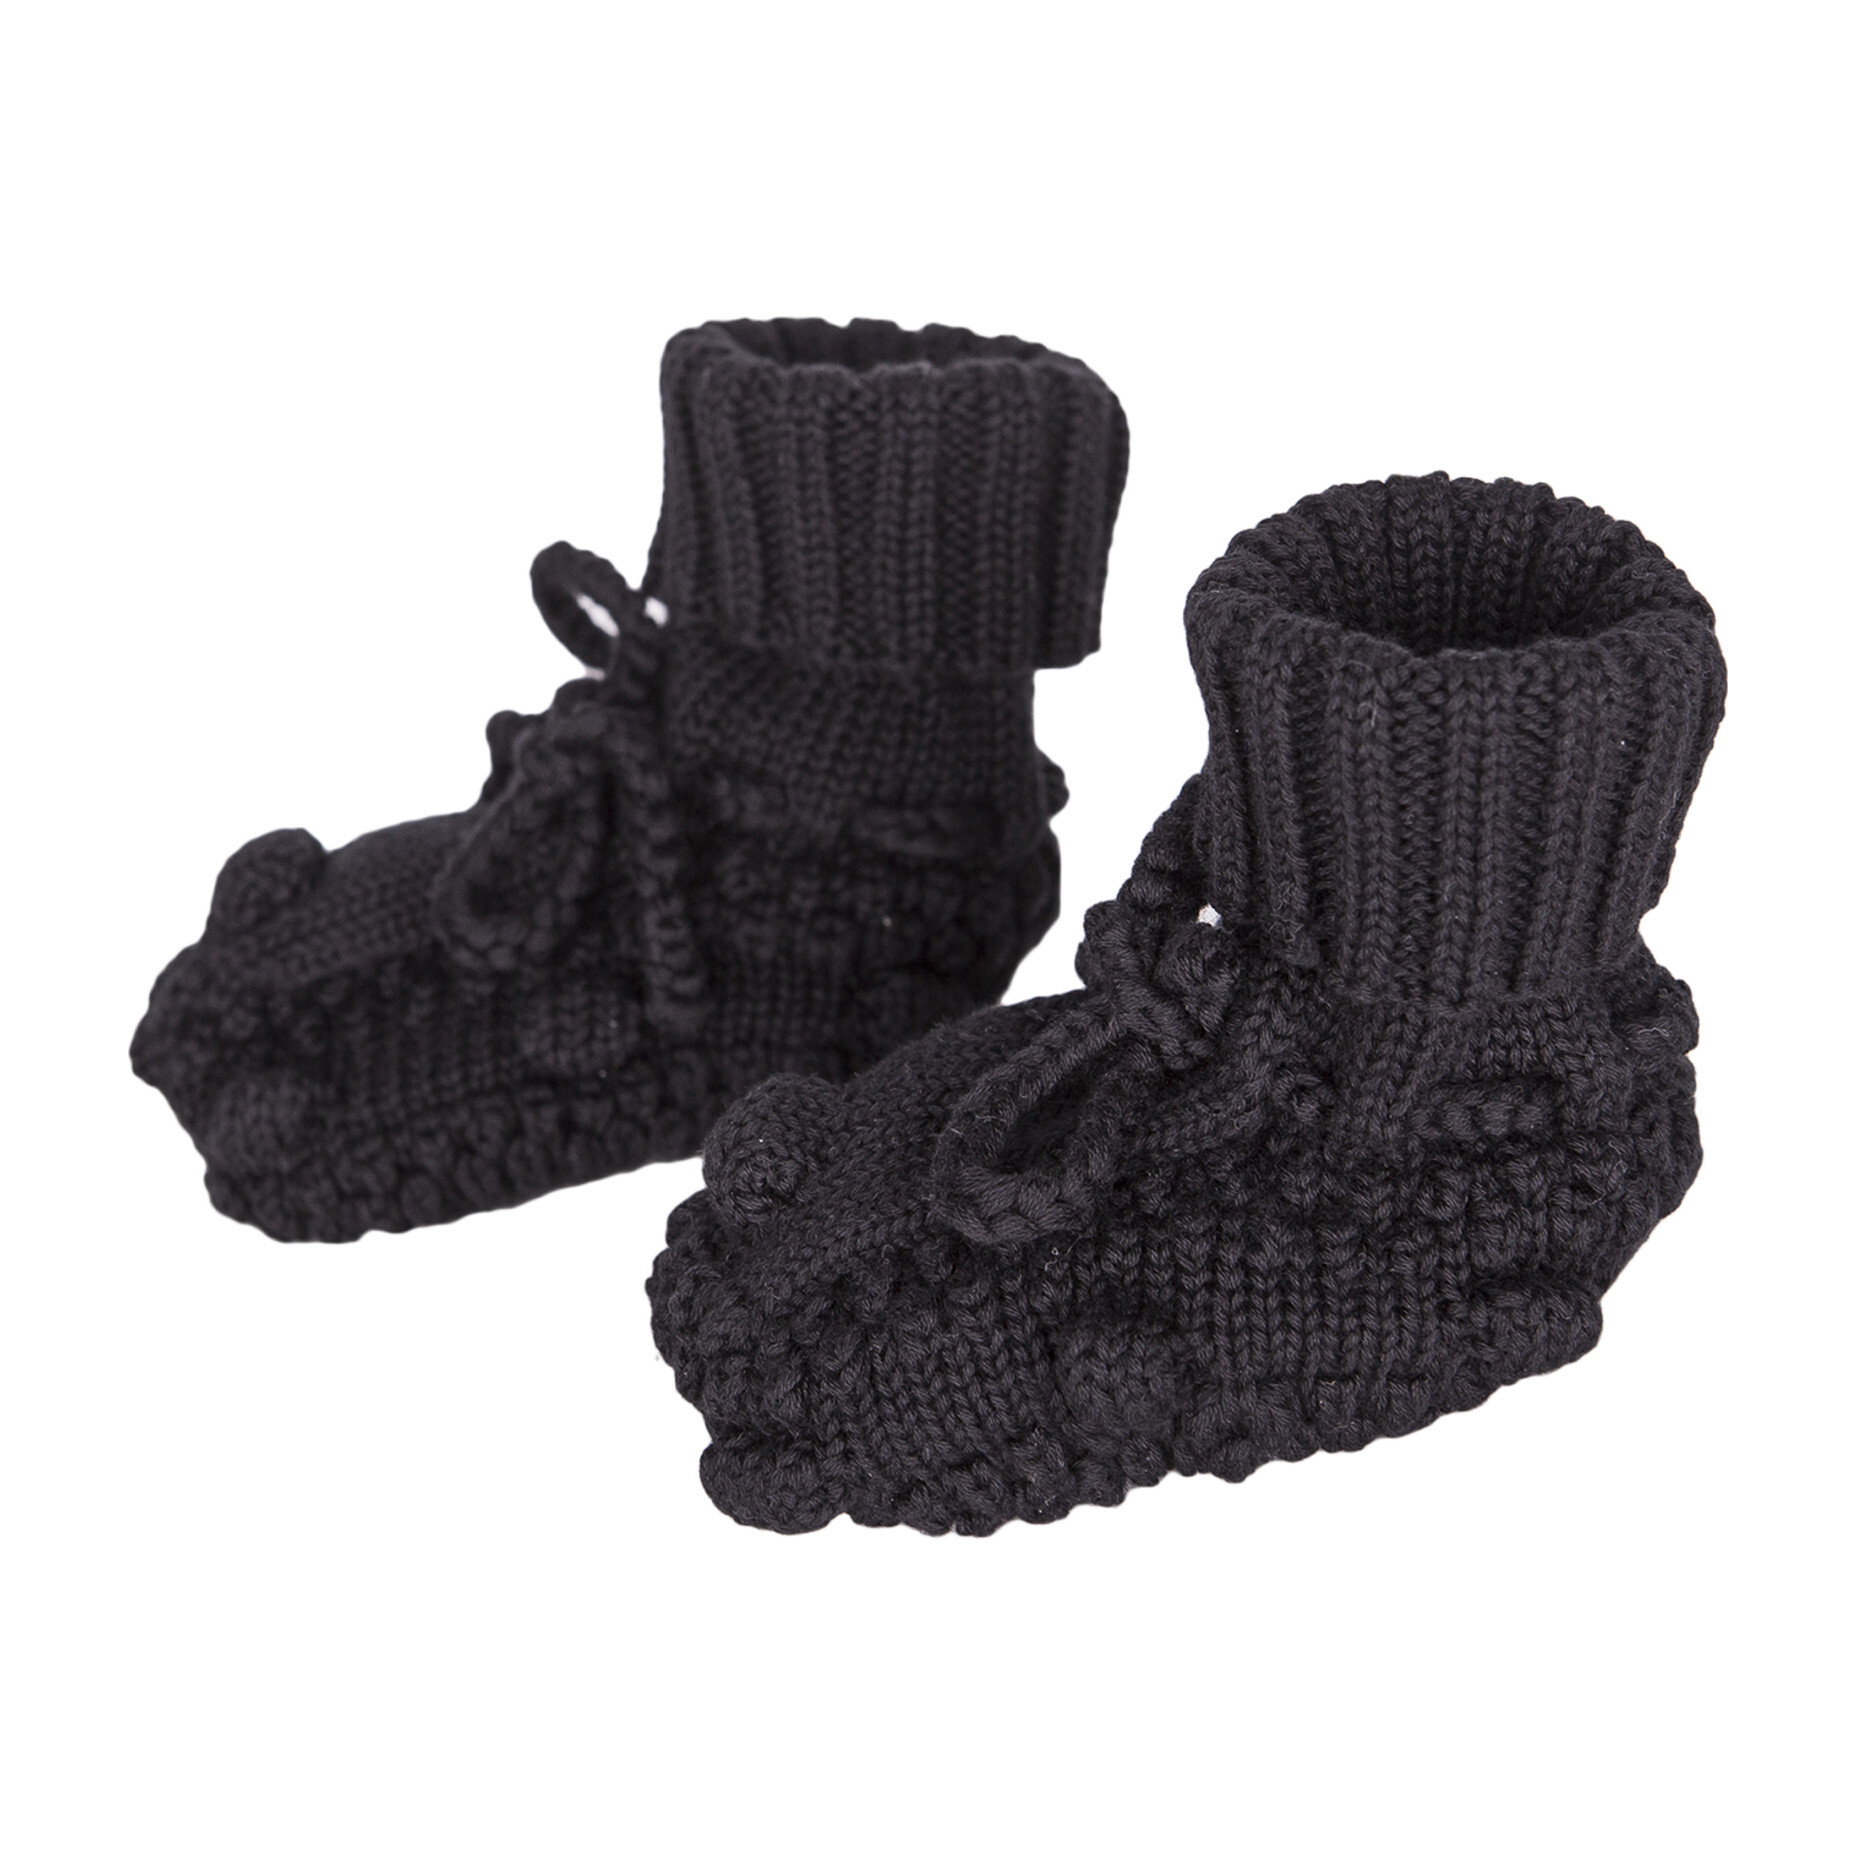 Knitted Booties, Black